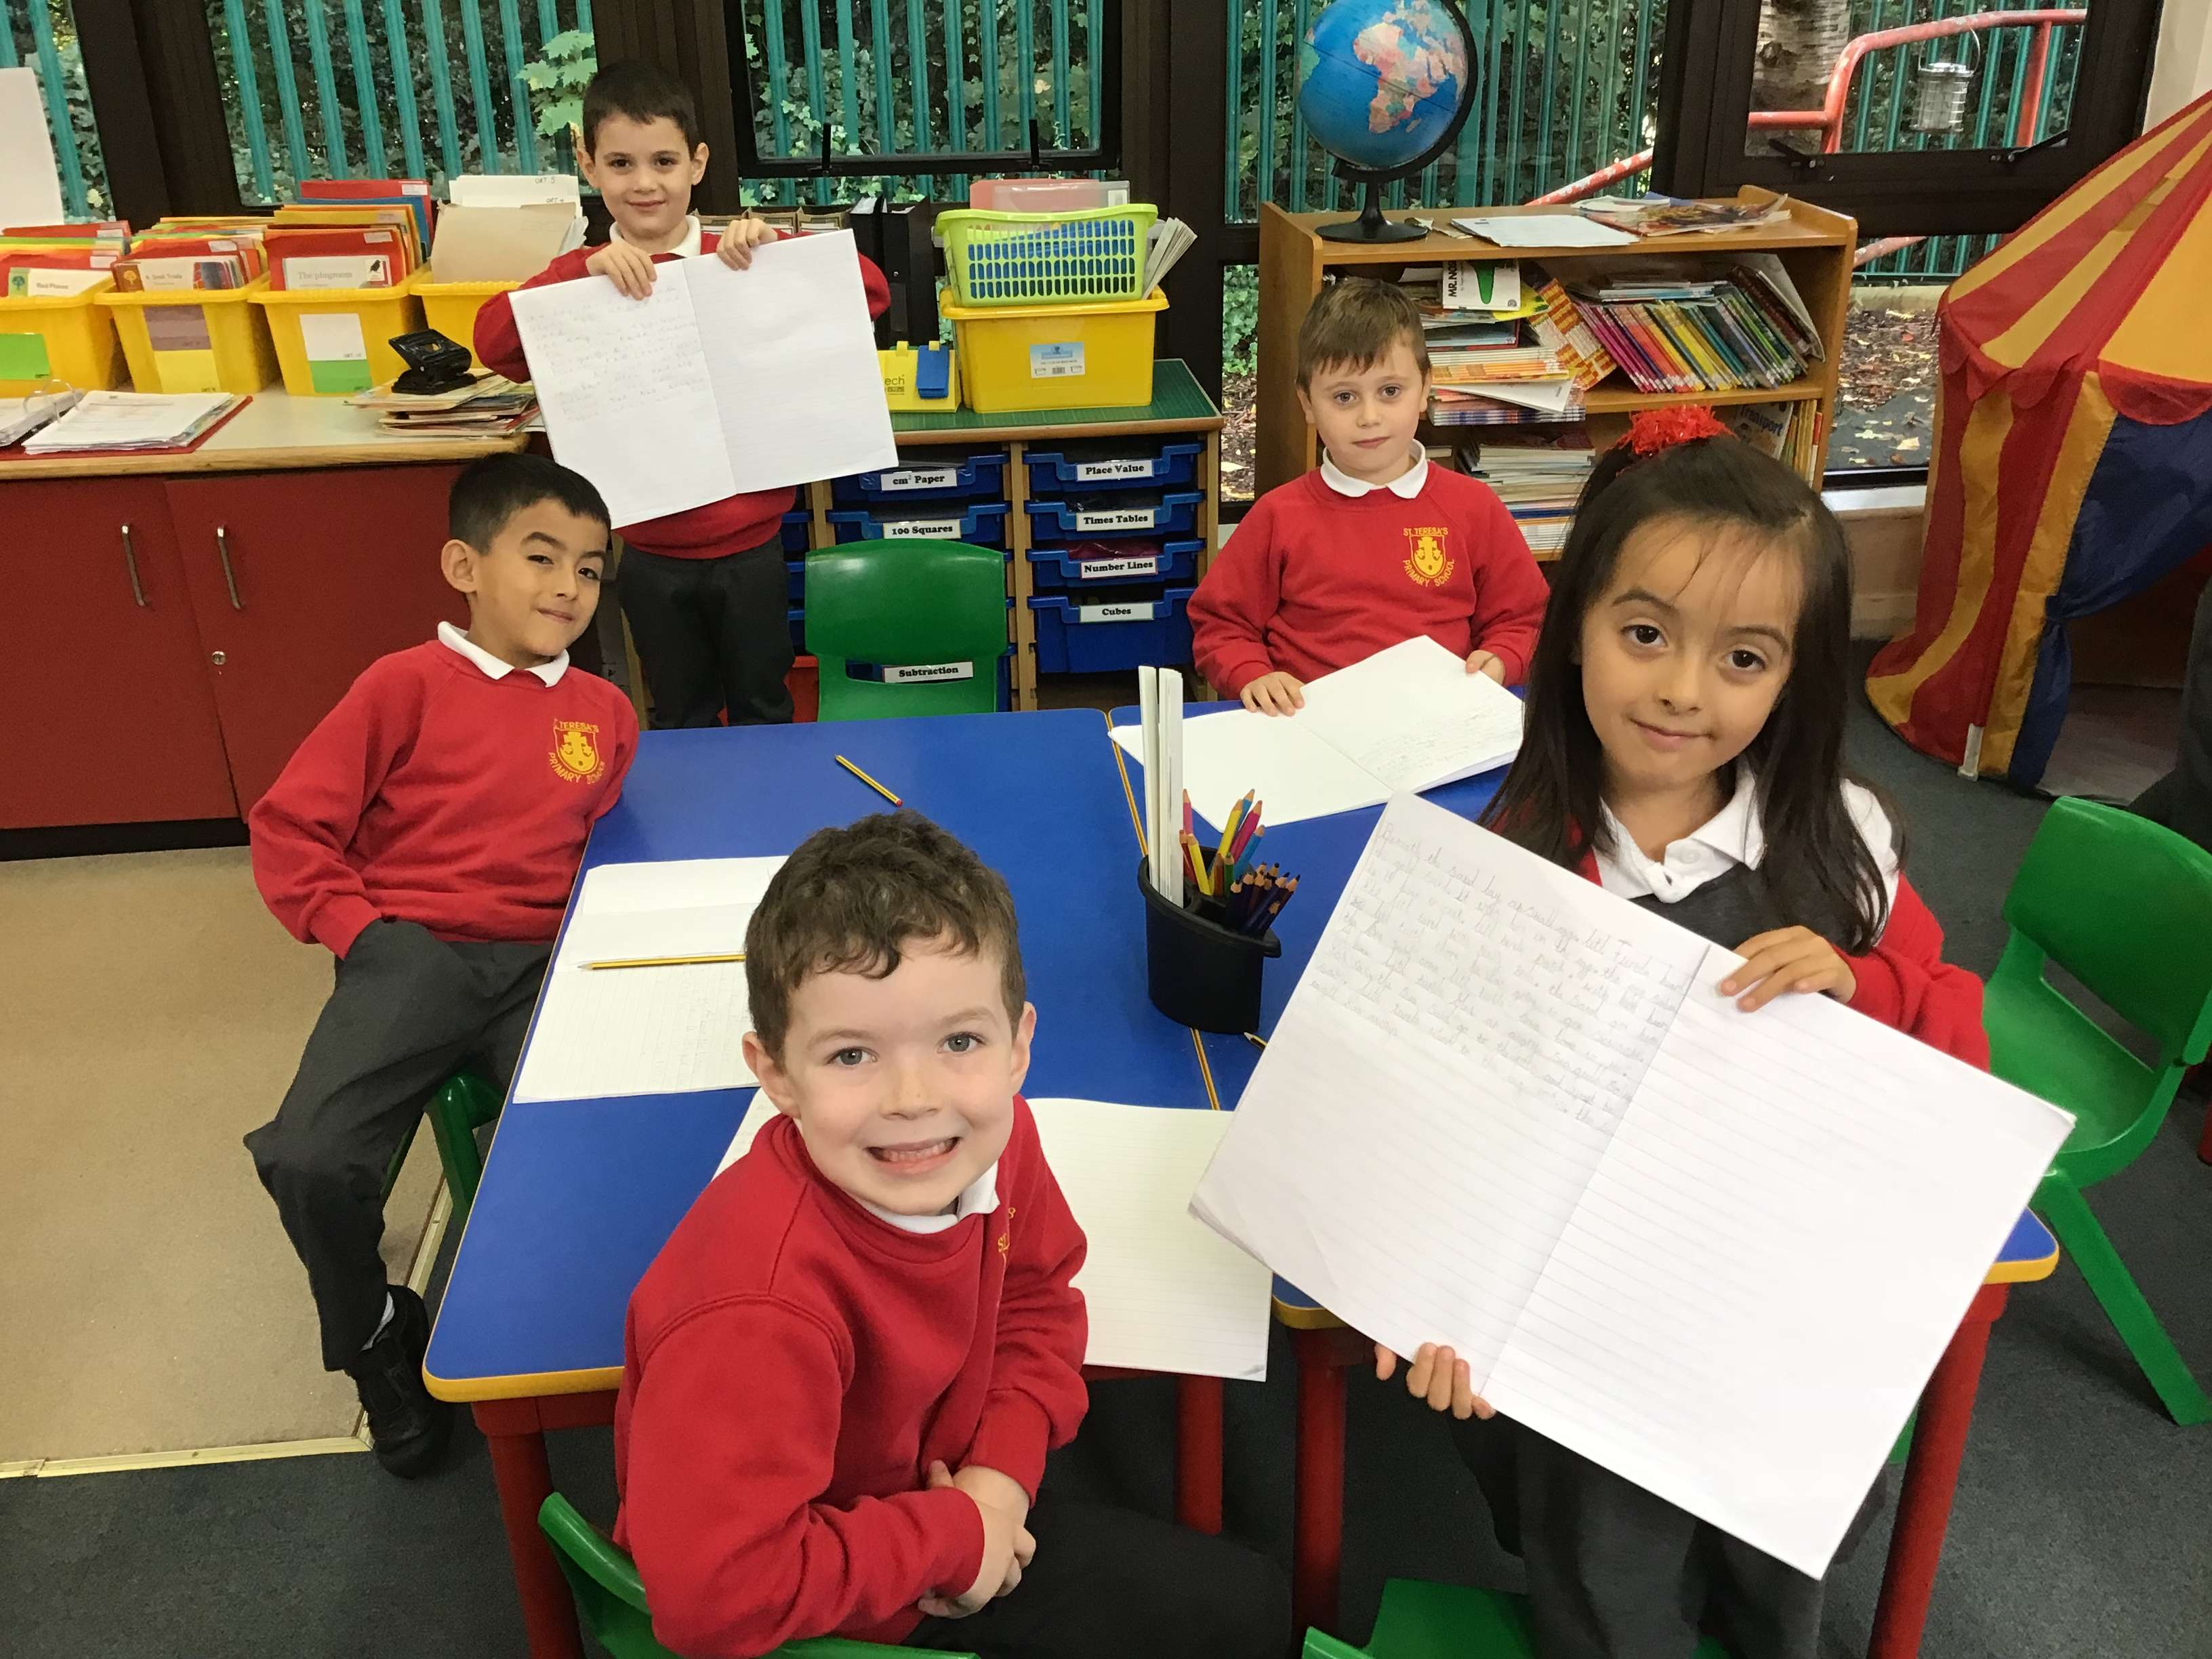 Year 2: Retell a Story